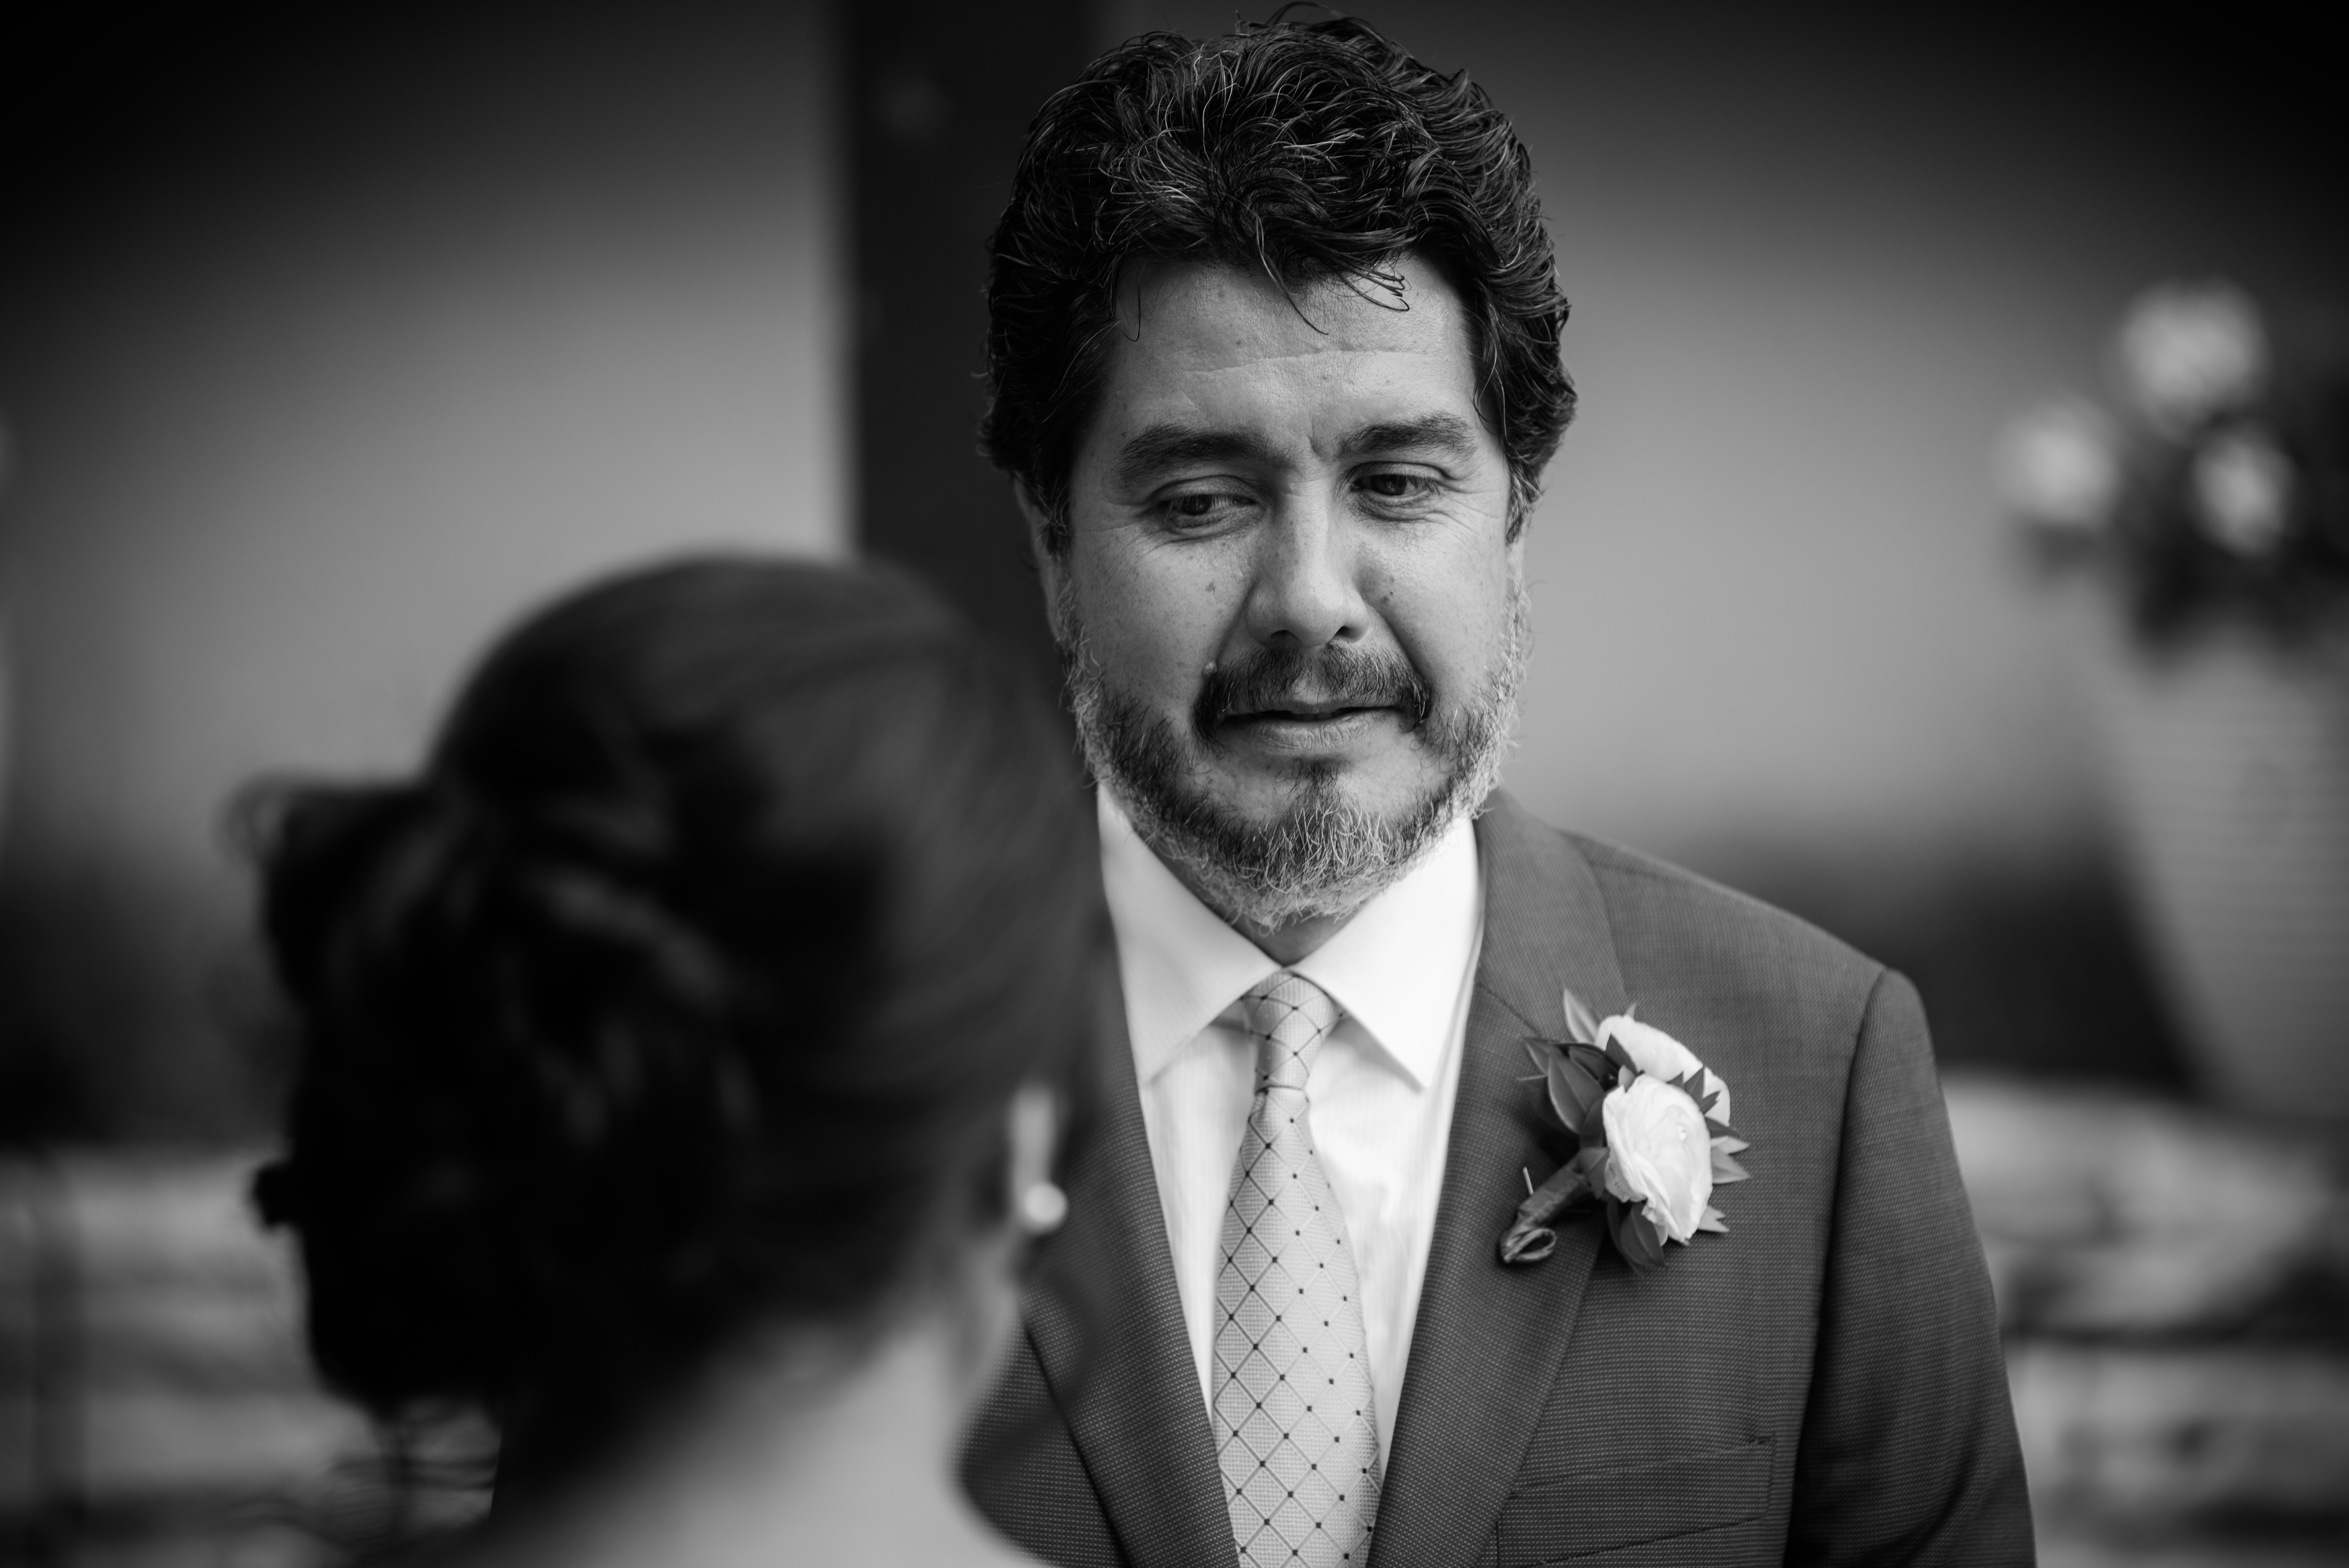 Groom looking emotional at bride